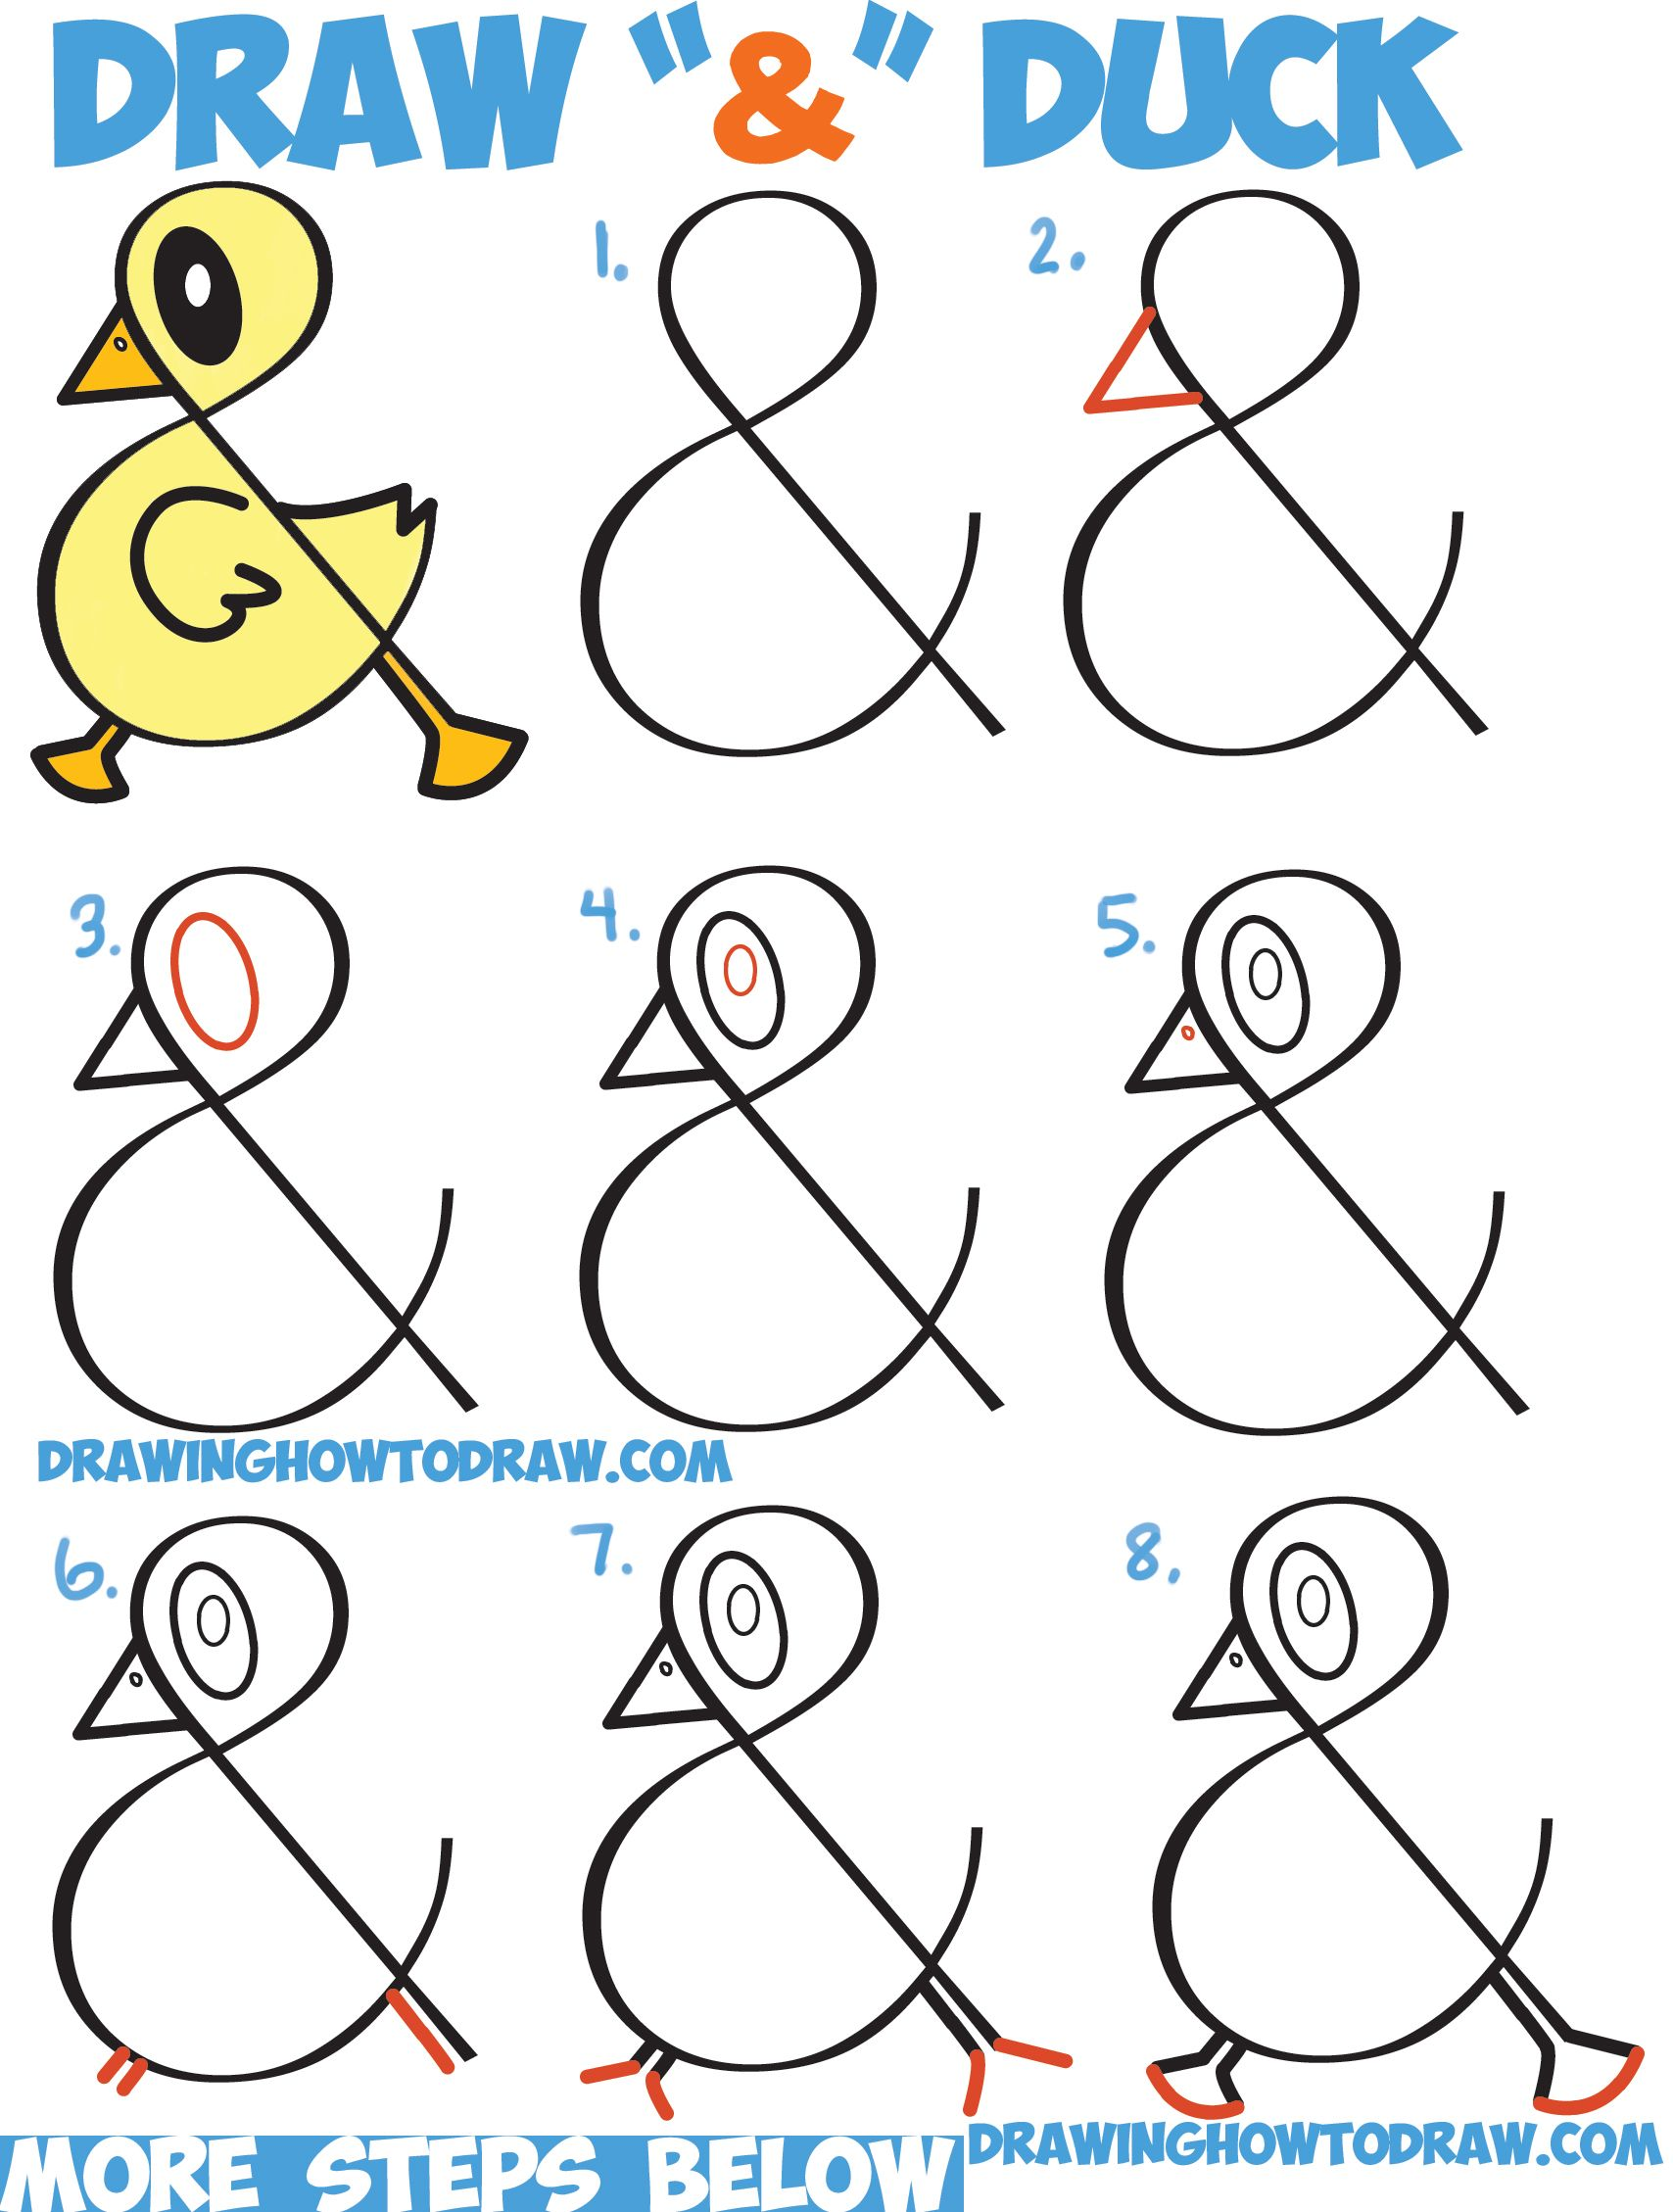 Scribble Drawing Tutorial : How to draw a cute cartoon duck from ampersand symbol